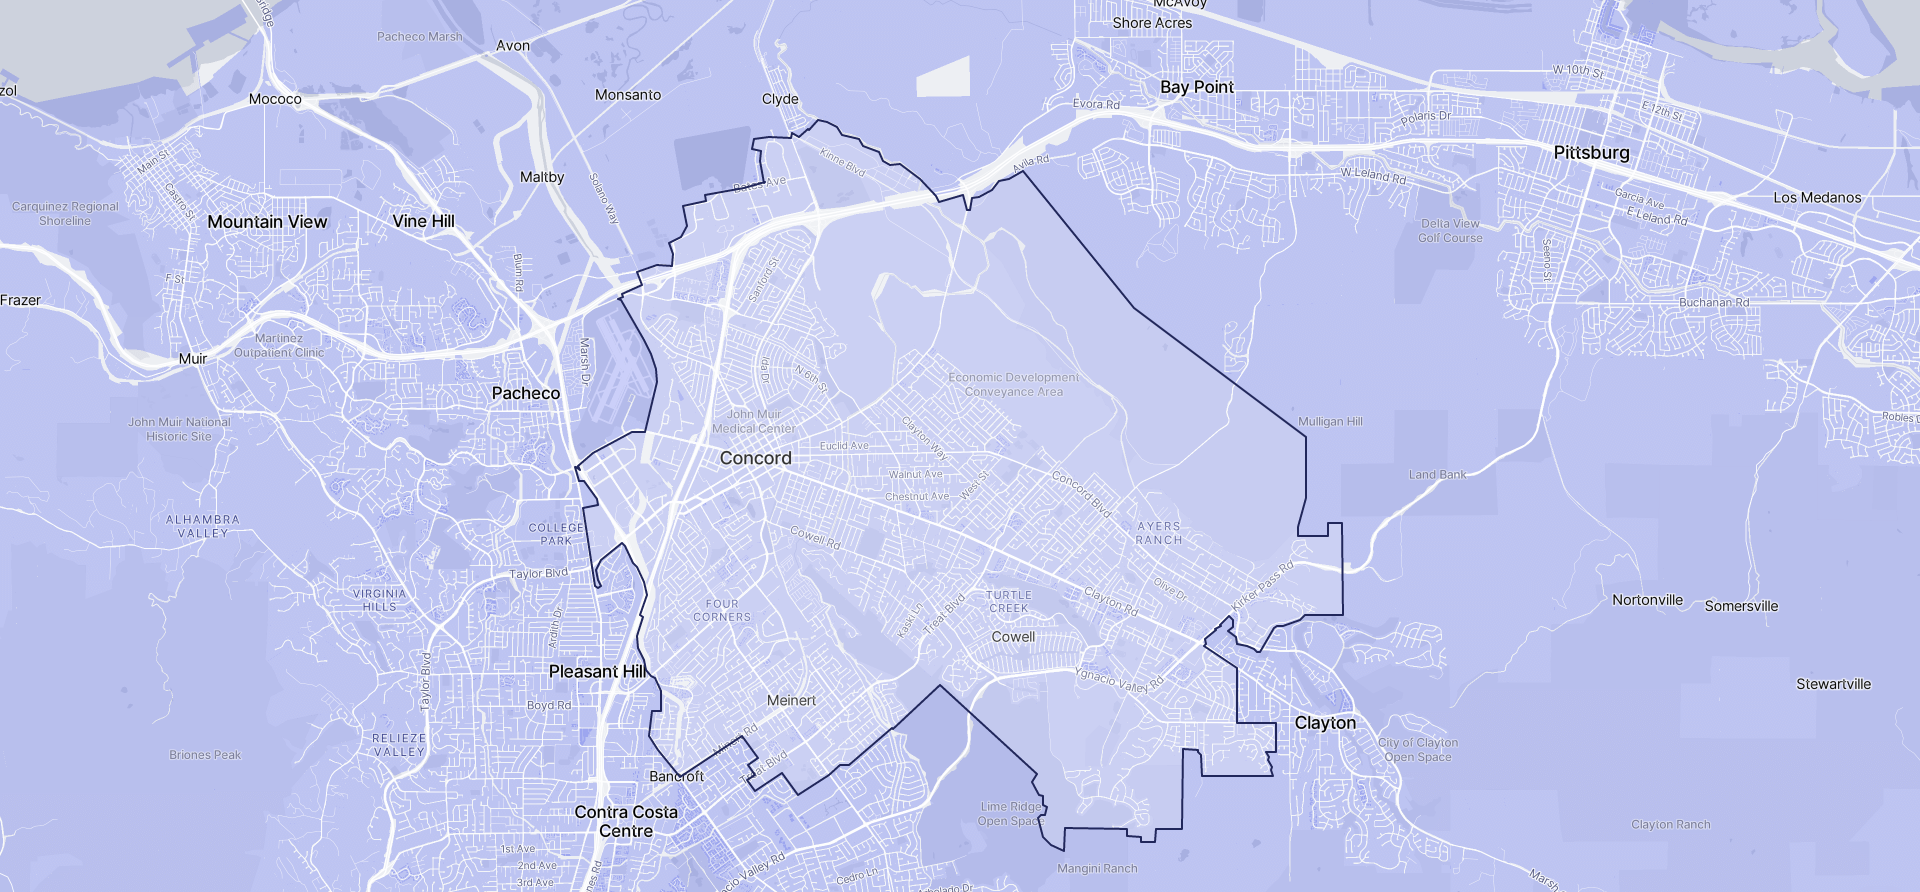 Image of Concord boundaries on a map.